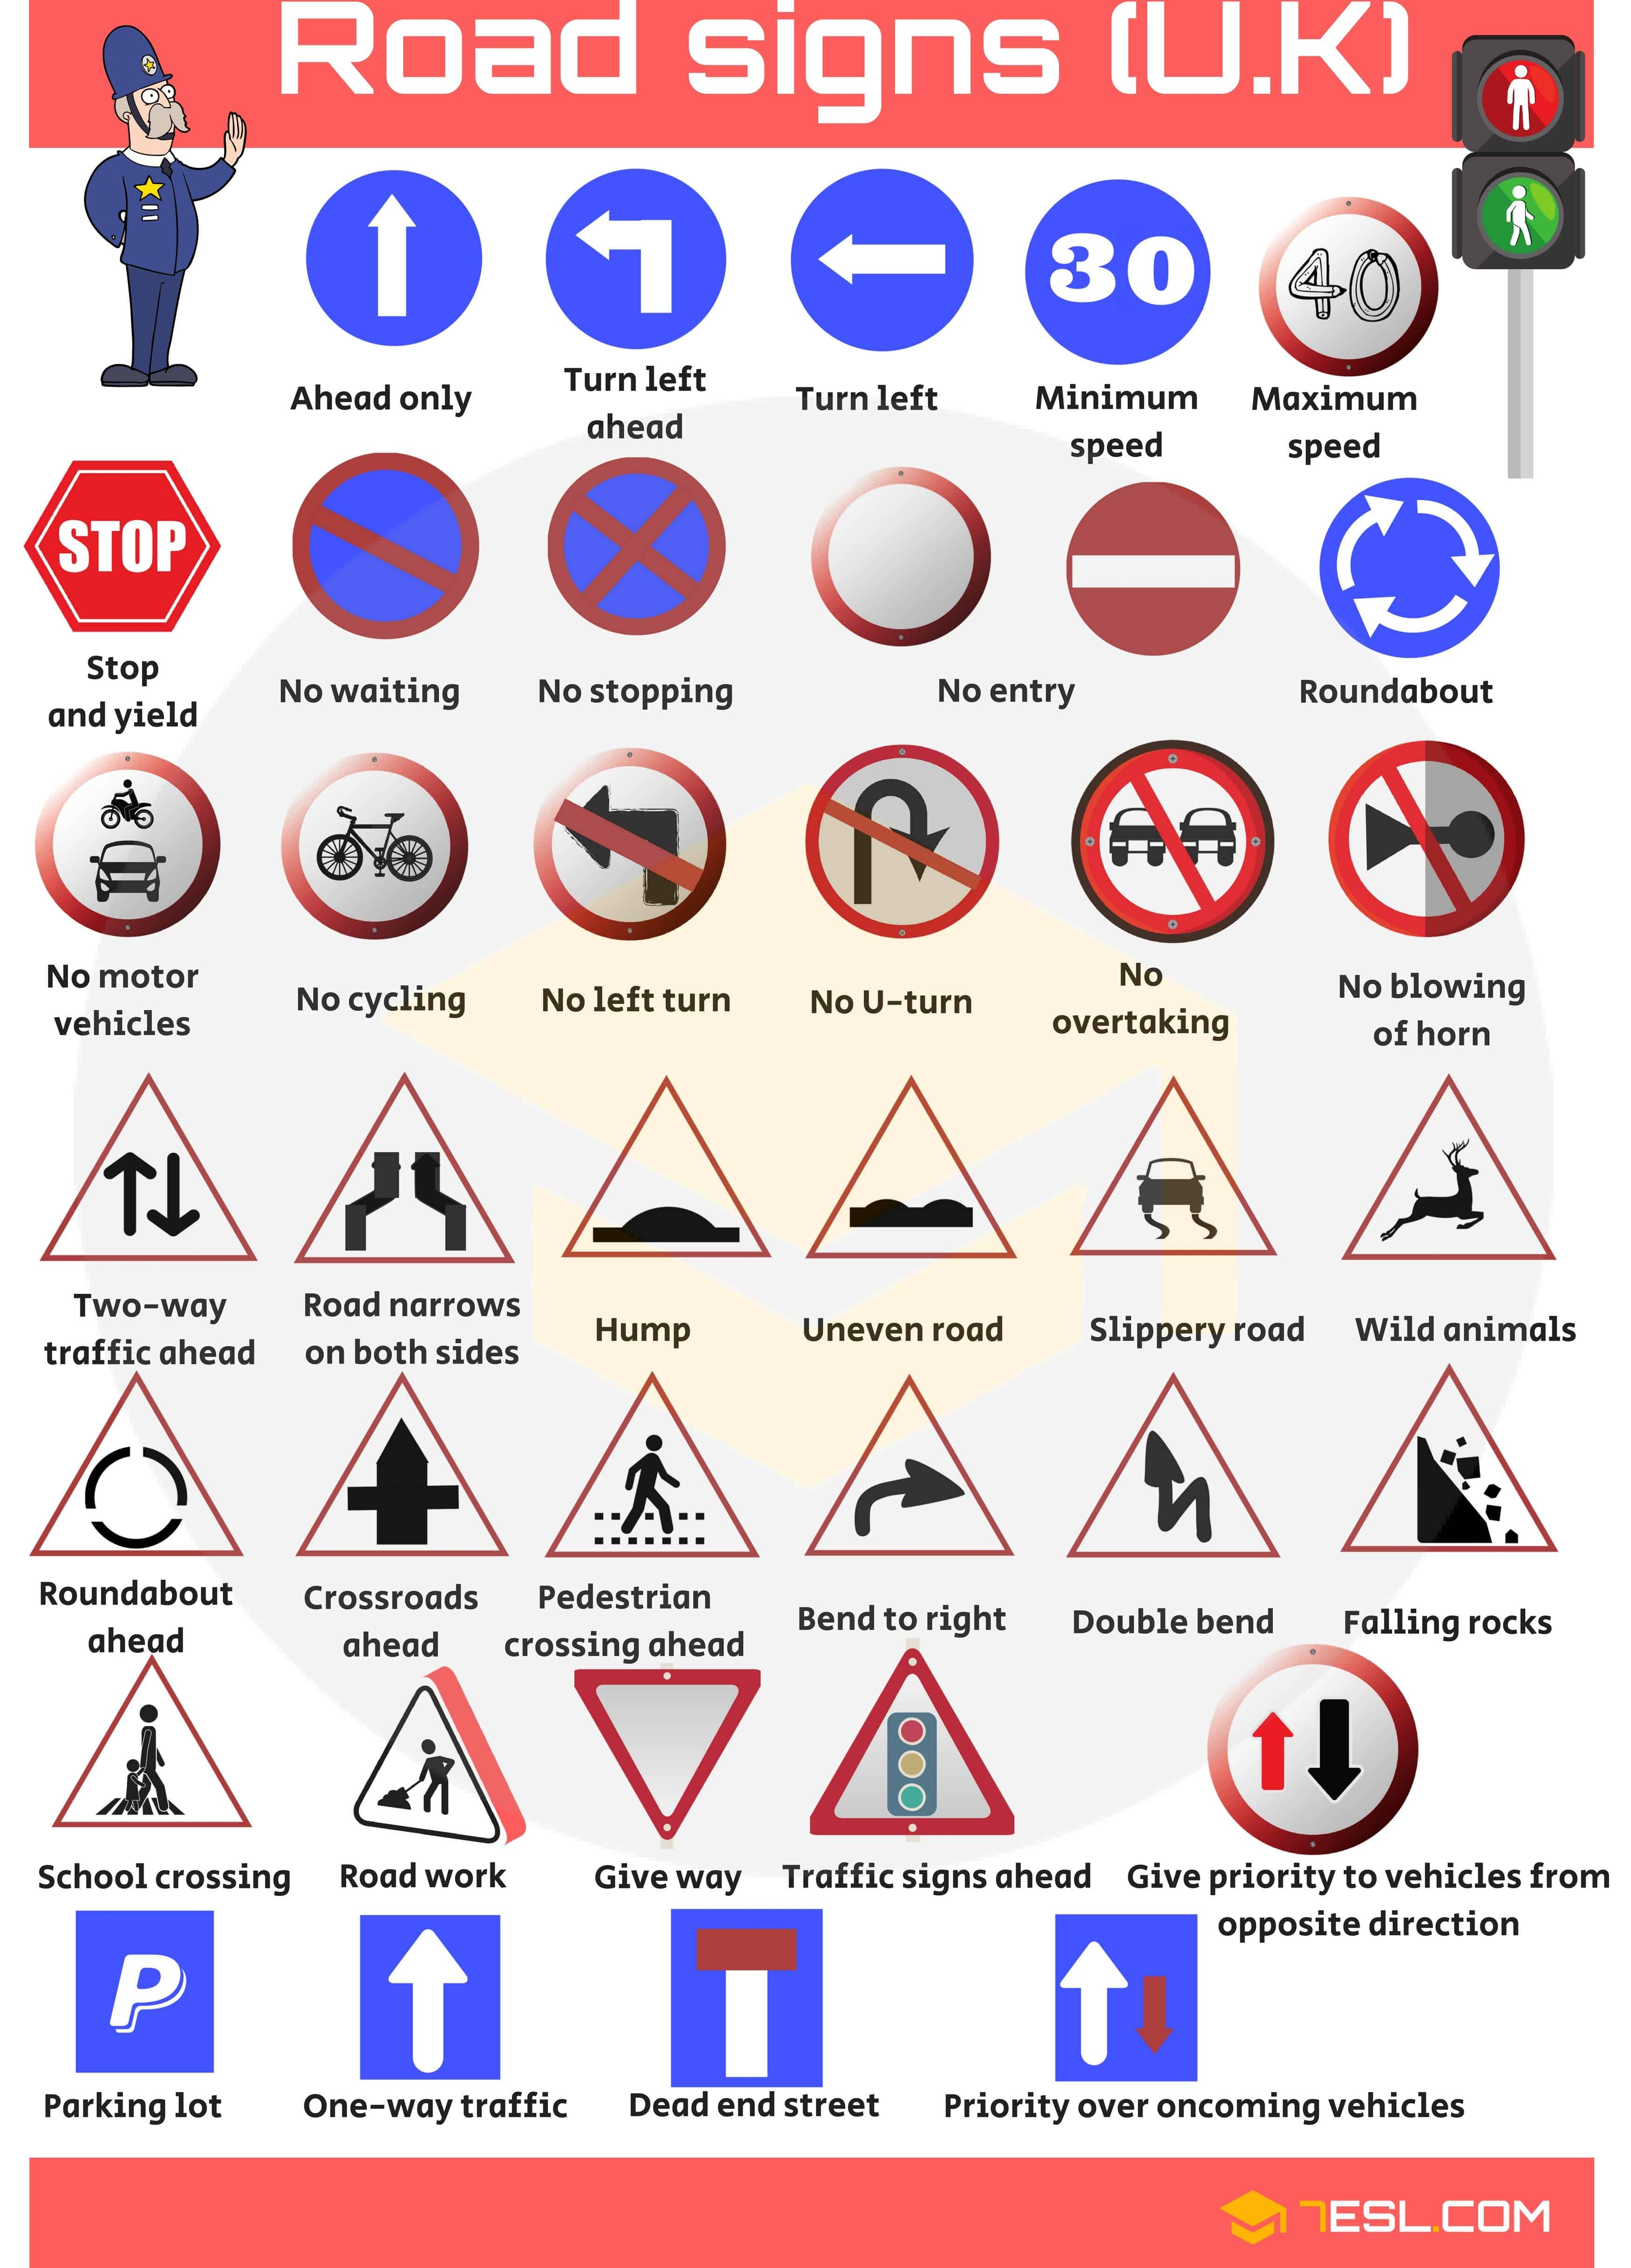 Road Signs Traffic Signs Street Signs With Pictures